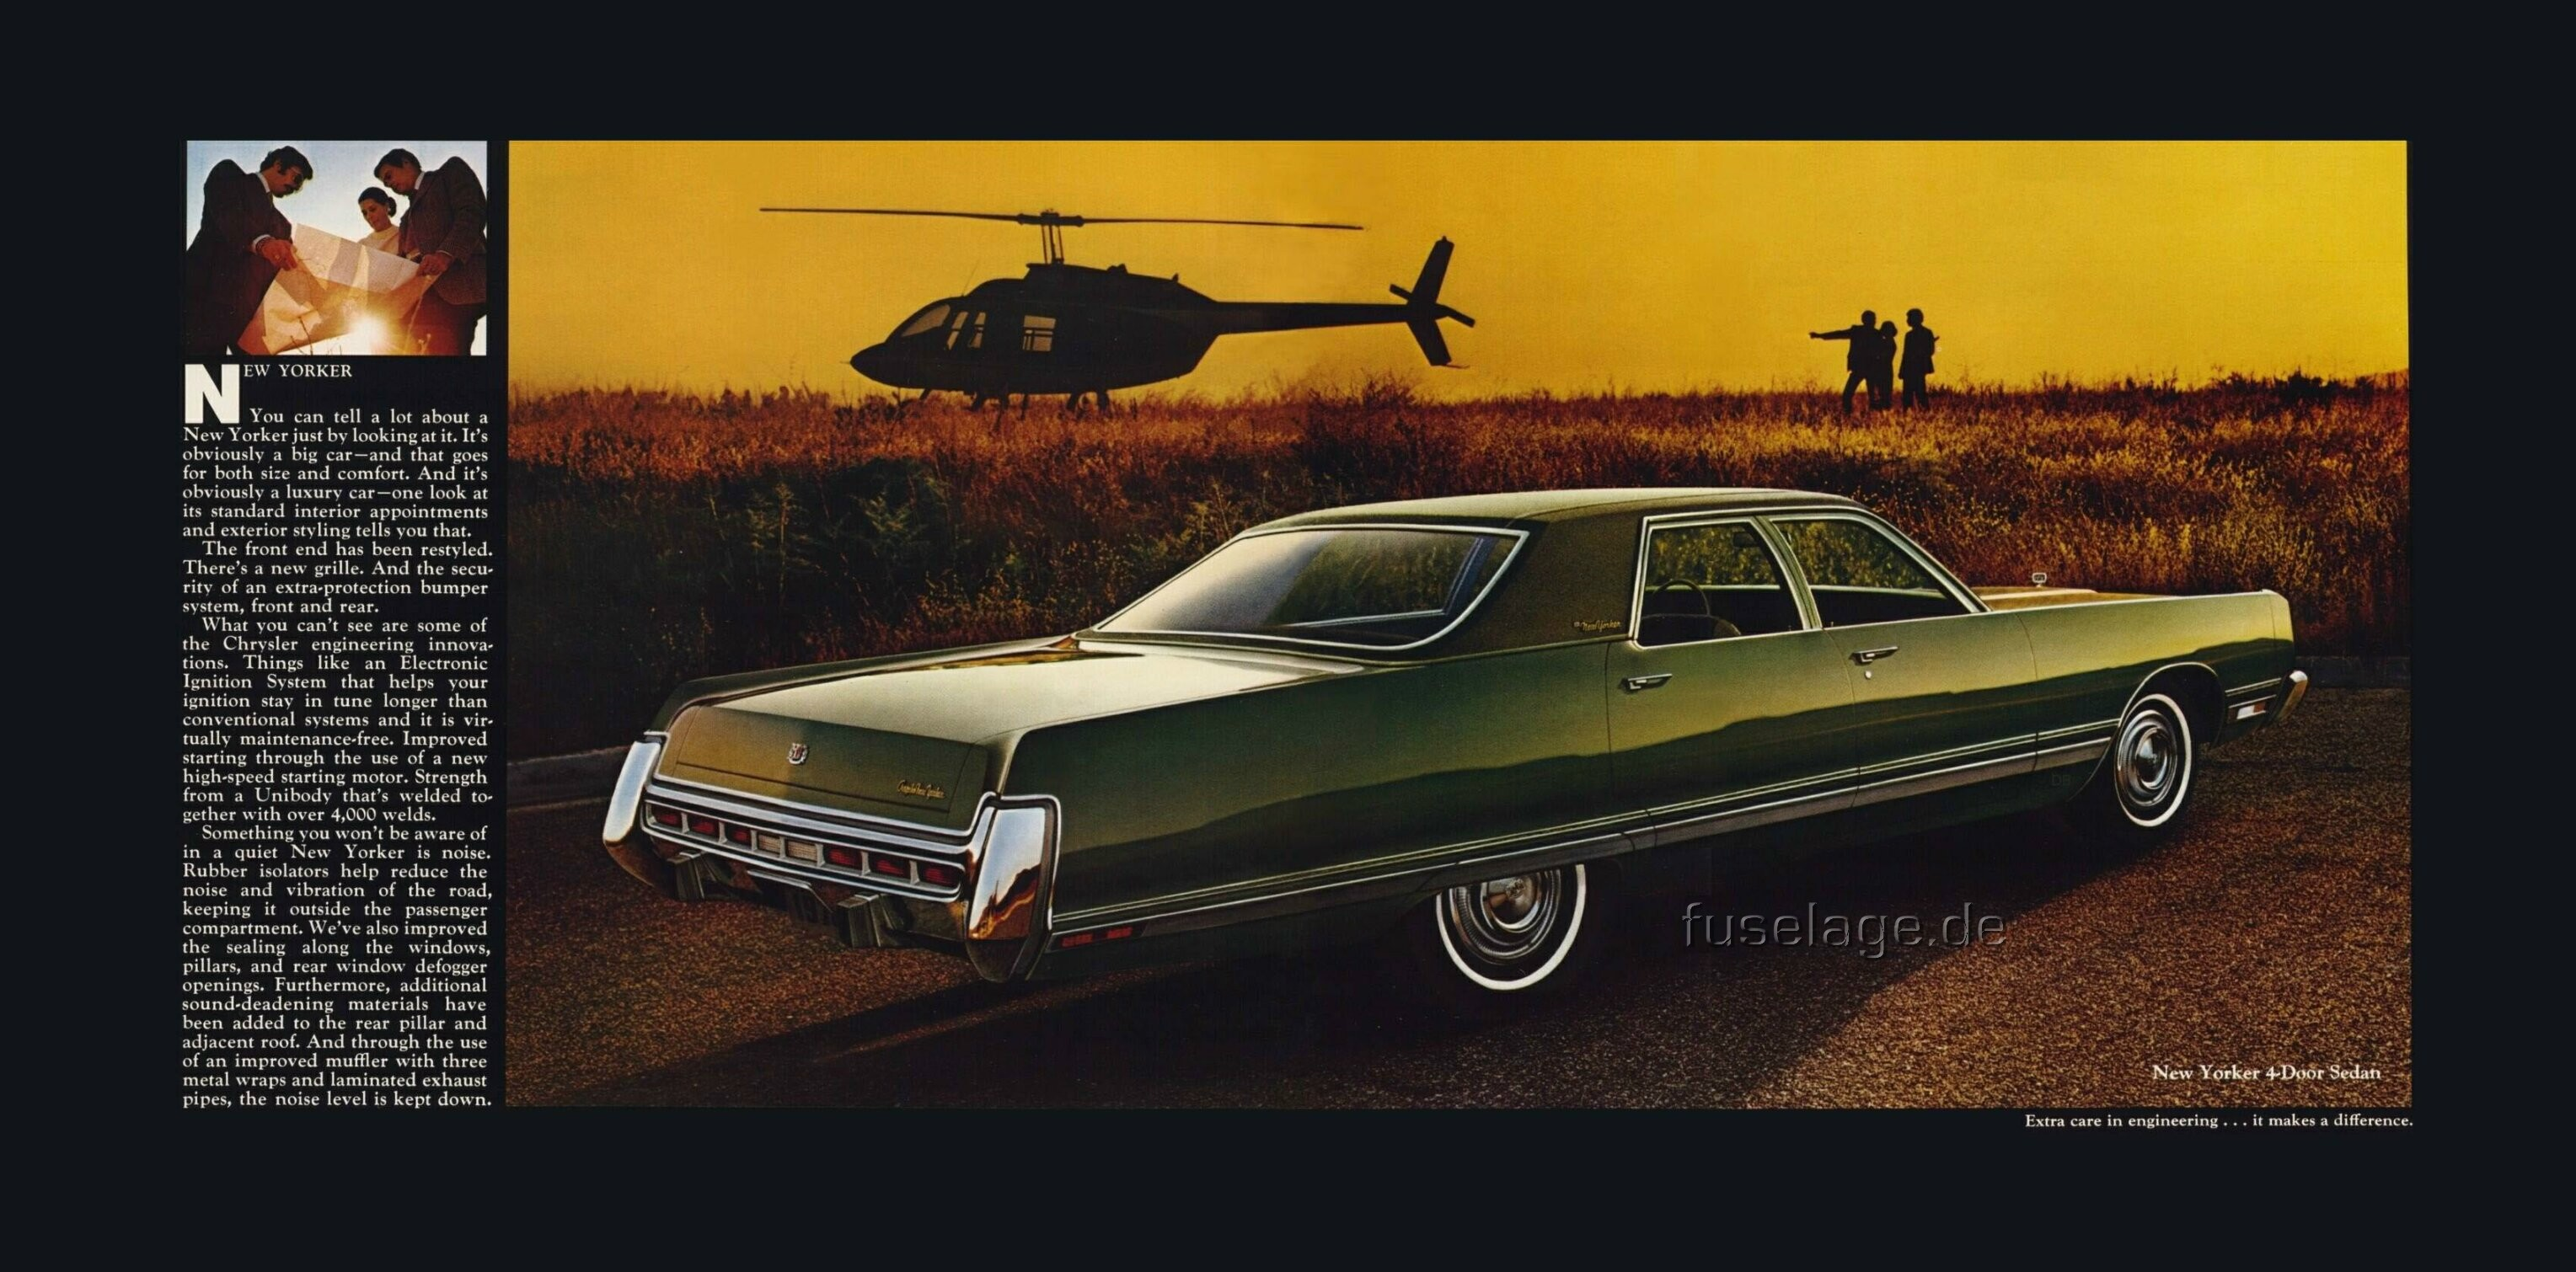 chrysler new yorker wallpaper